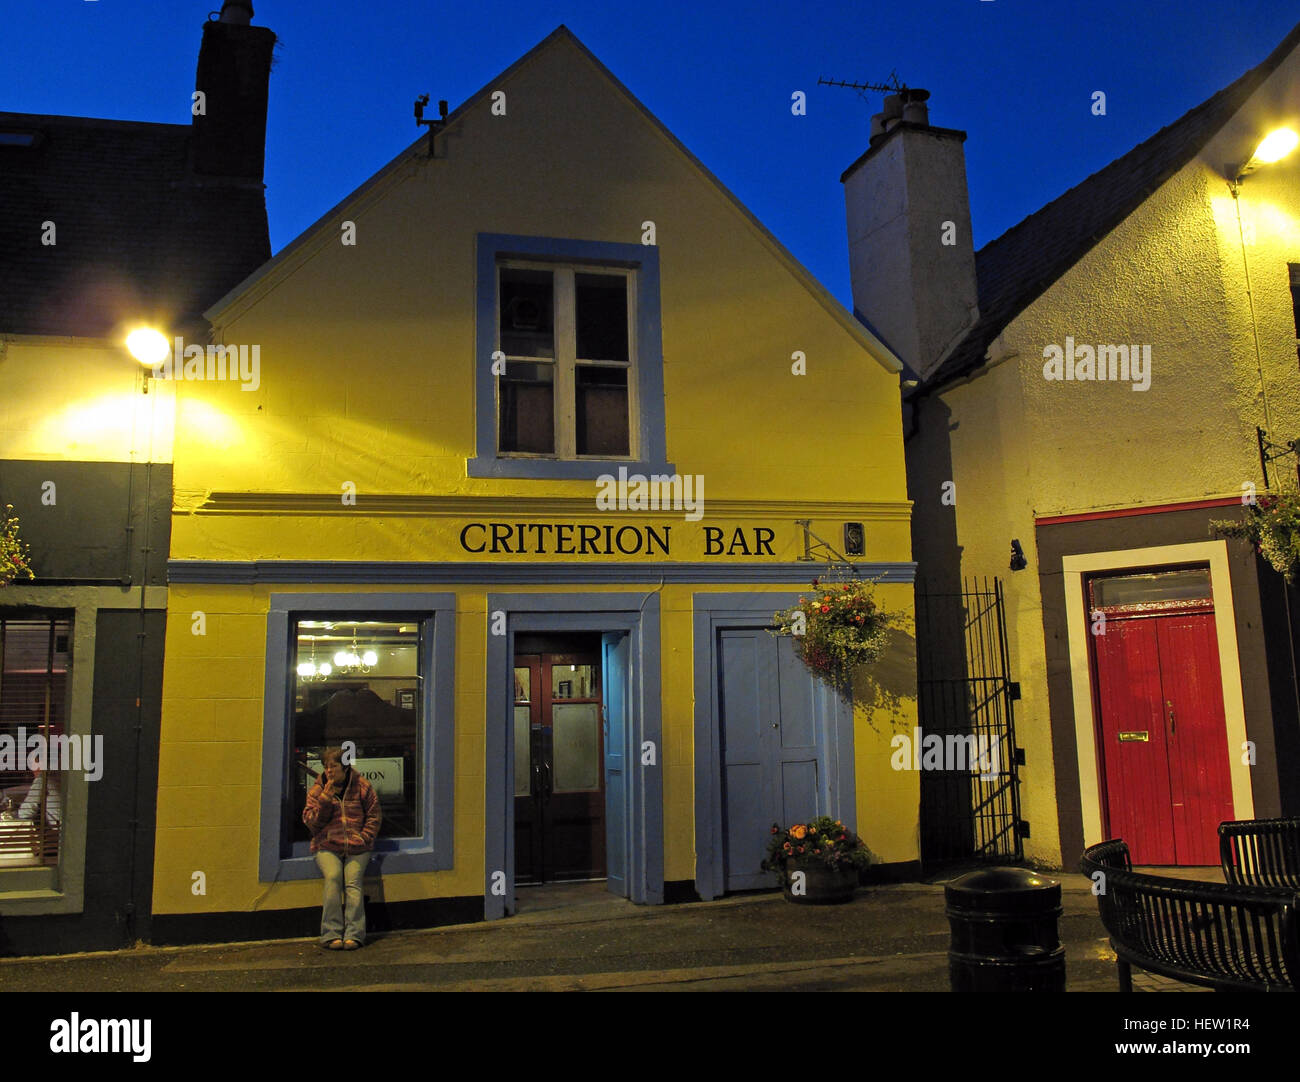 Stornoway Isle Of Lewis,Criterion Bar - Stock Image